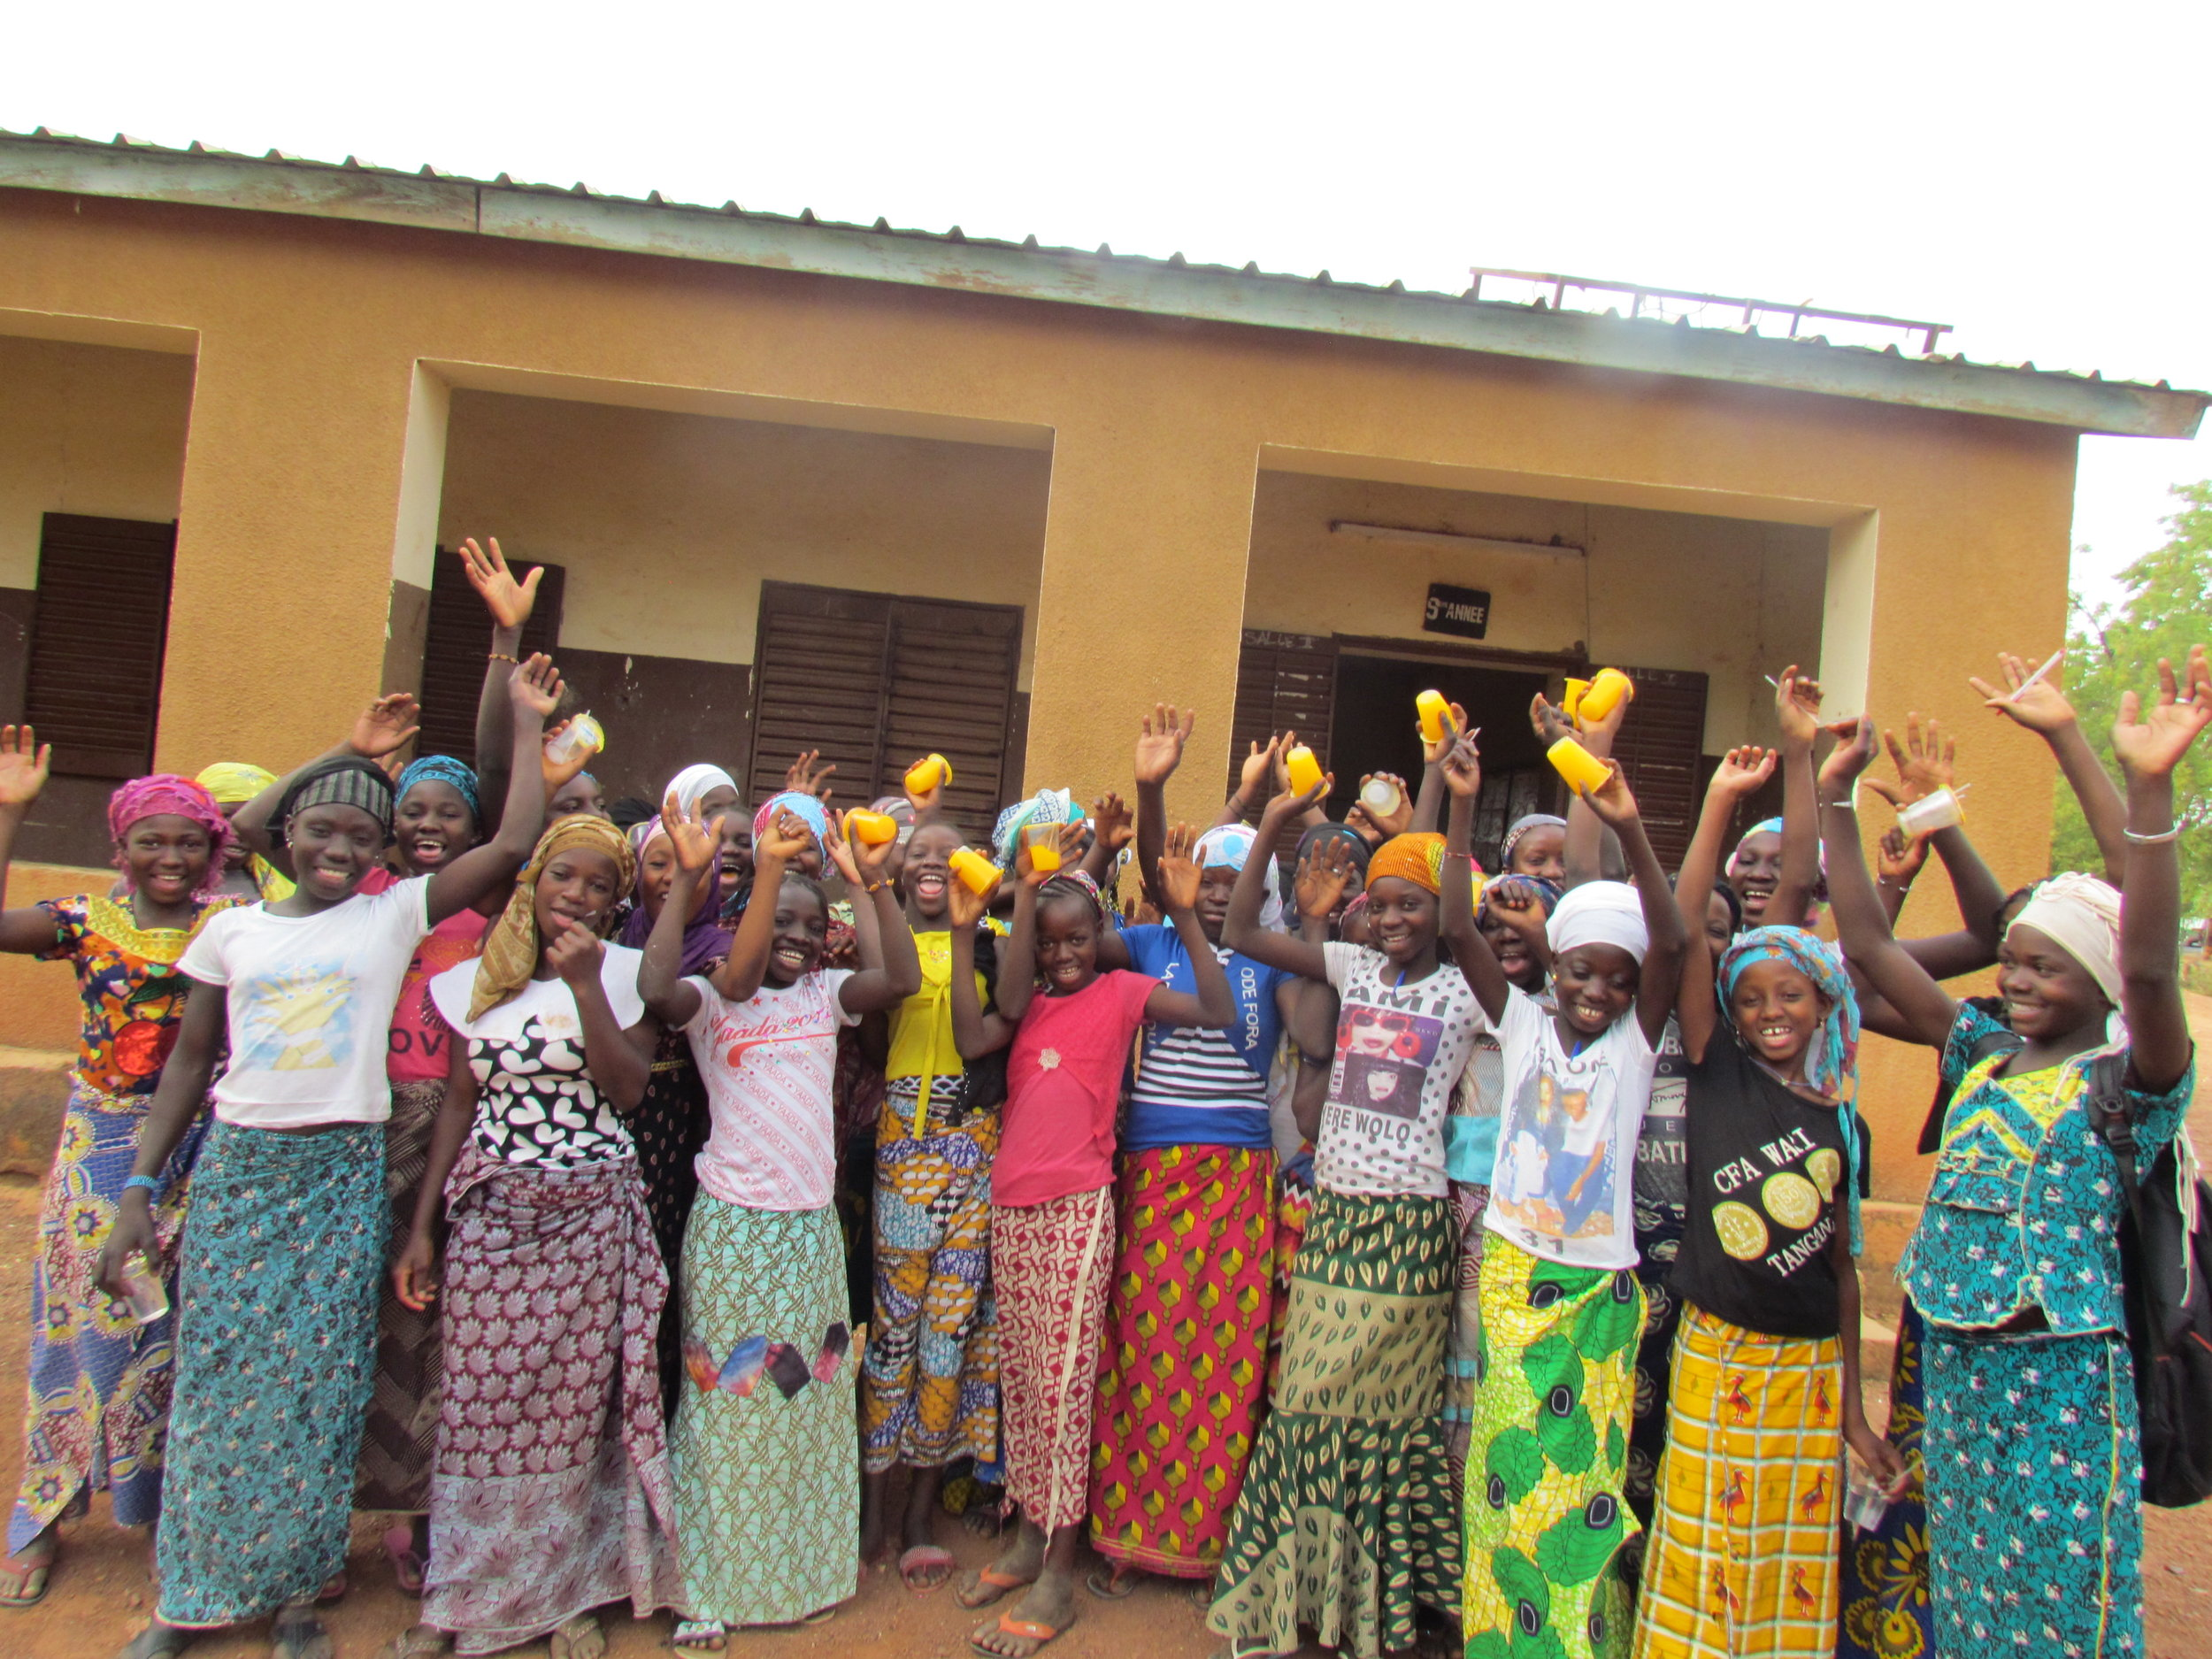 Some of our Girls Project participants in Simidji celebrate after a leadership training where they developed their skills and formed support groups to help each other stay in school.